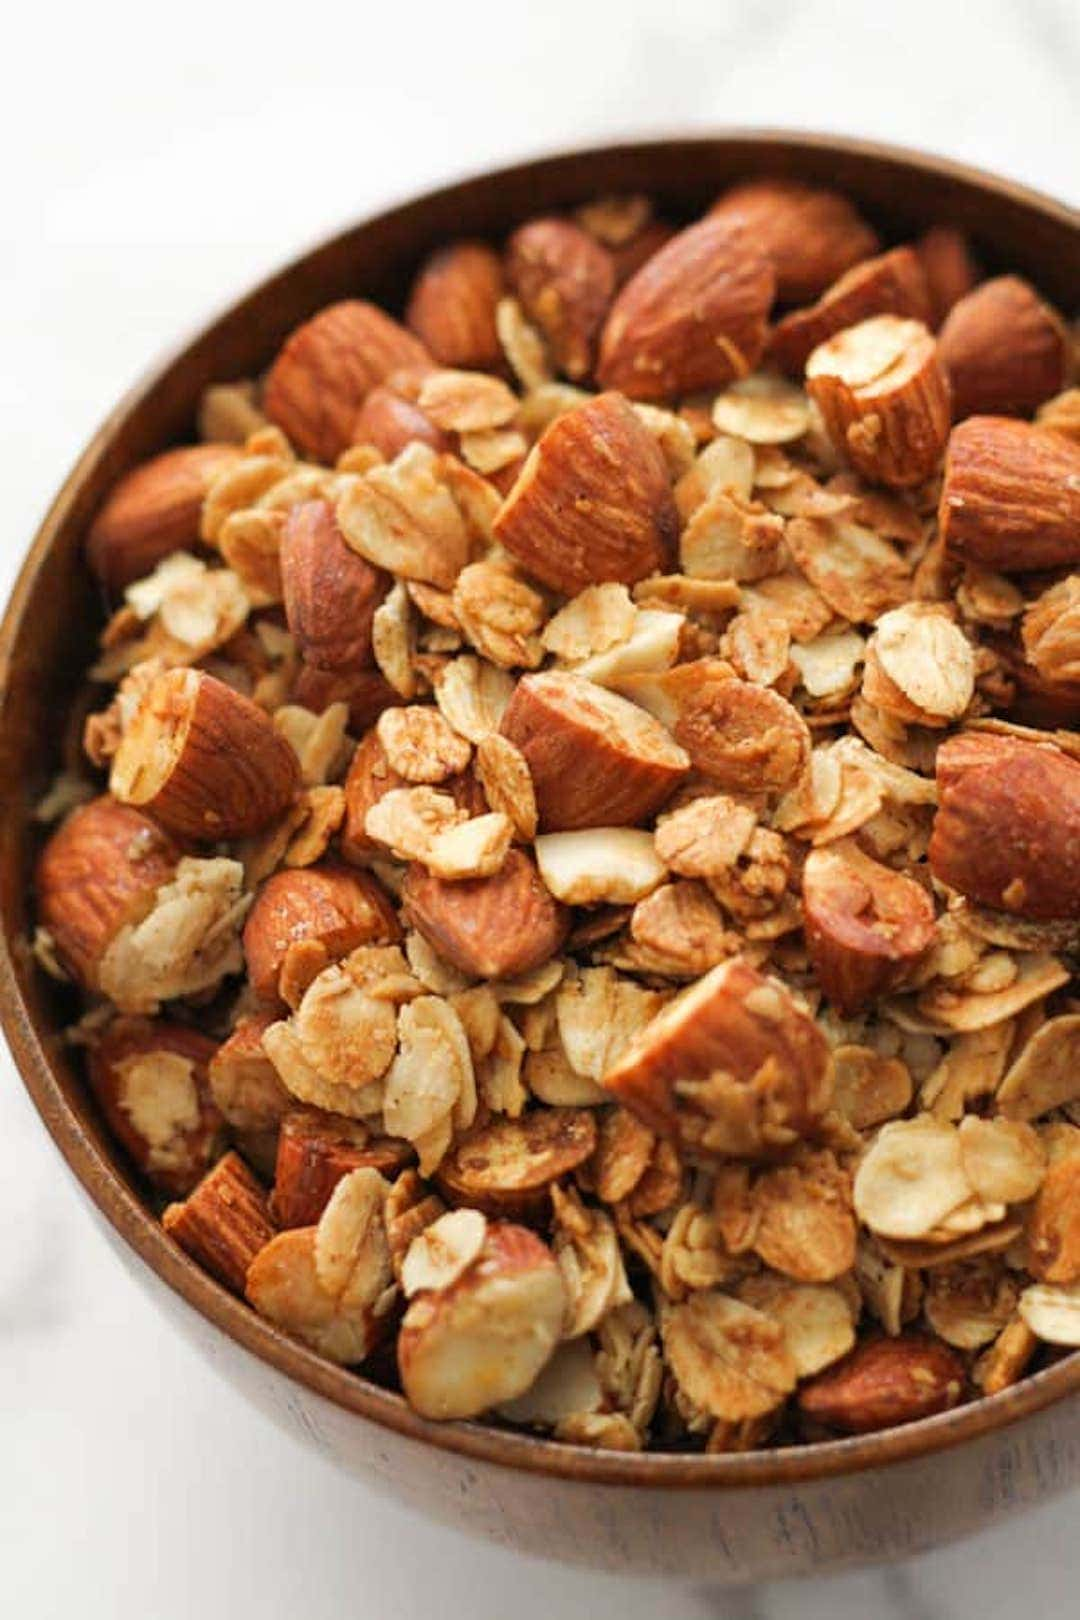 image of air fryer granola in a bowl with almonds